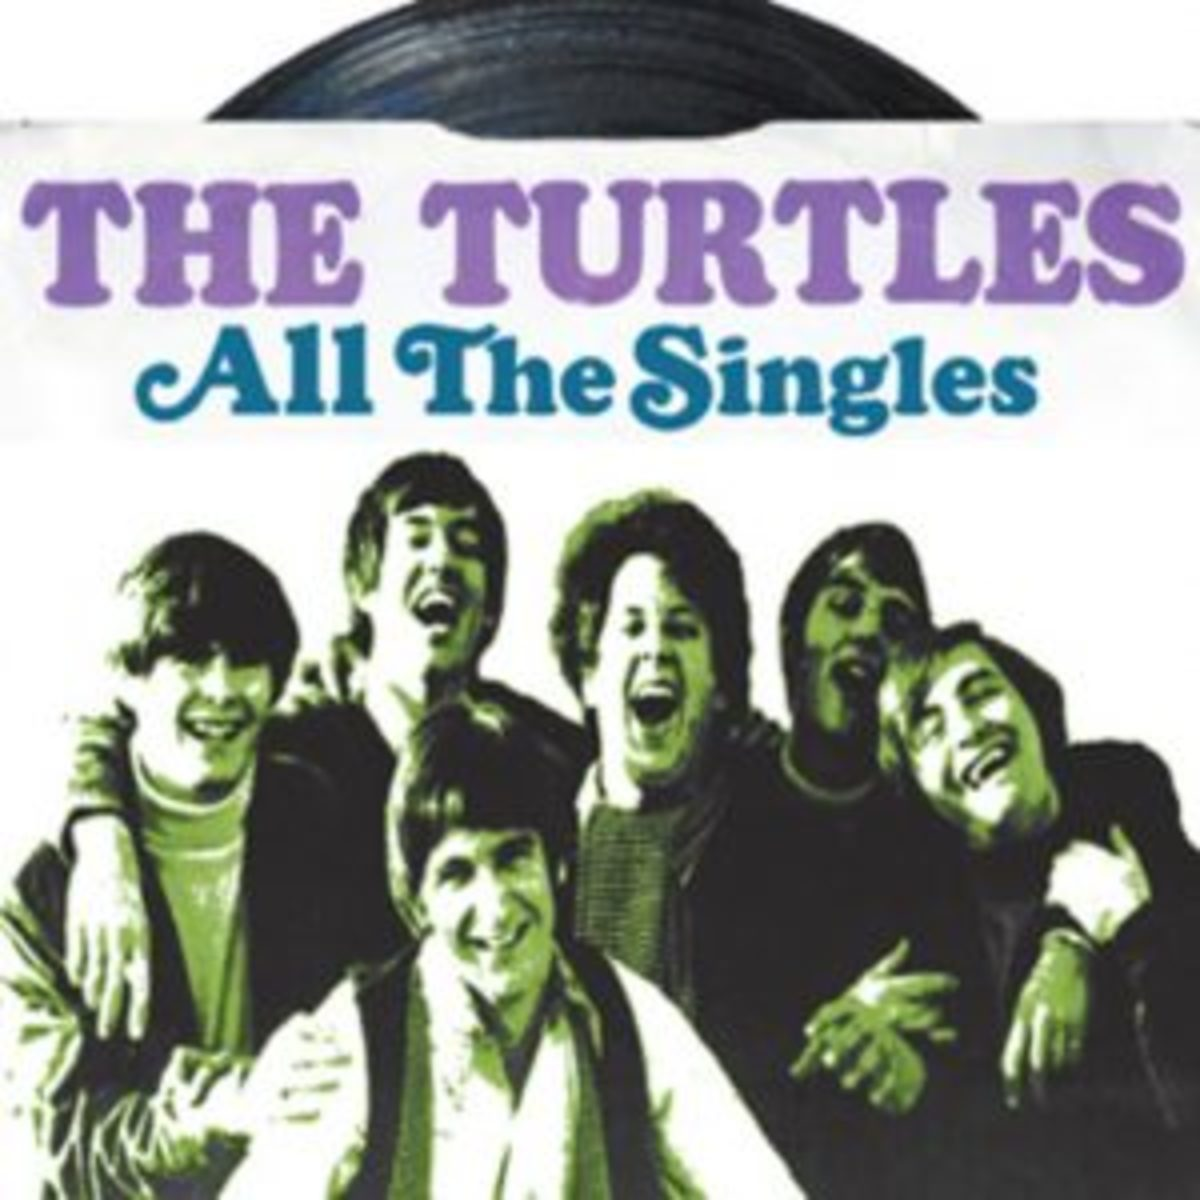 Turtles-All-the-Singles-300x300